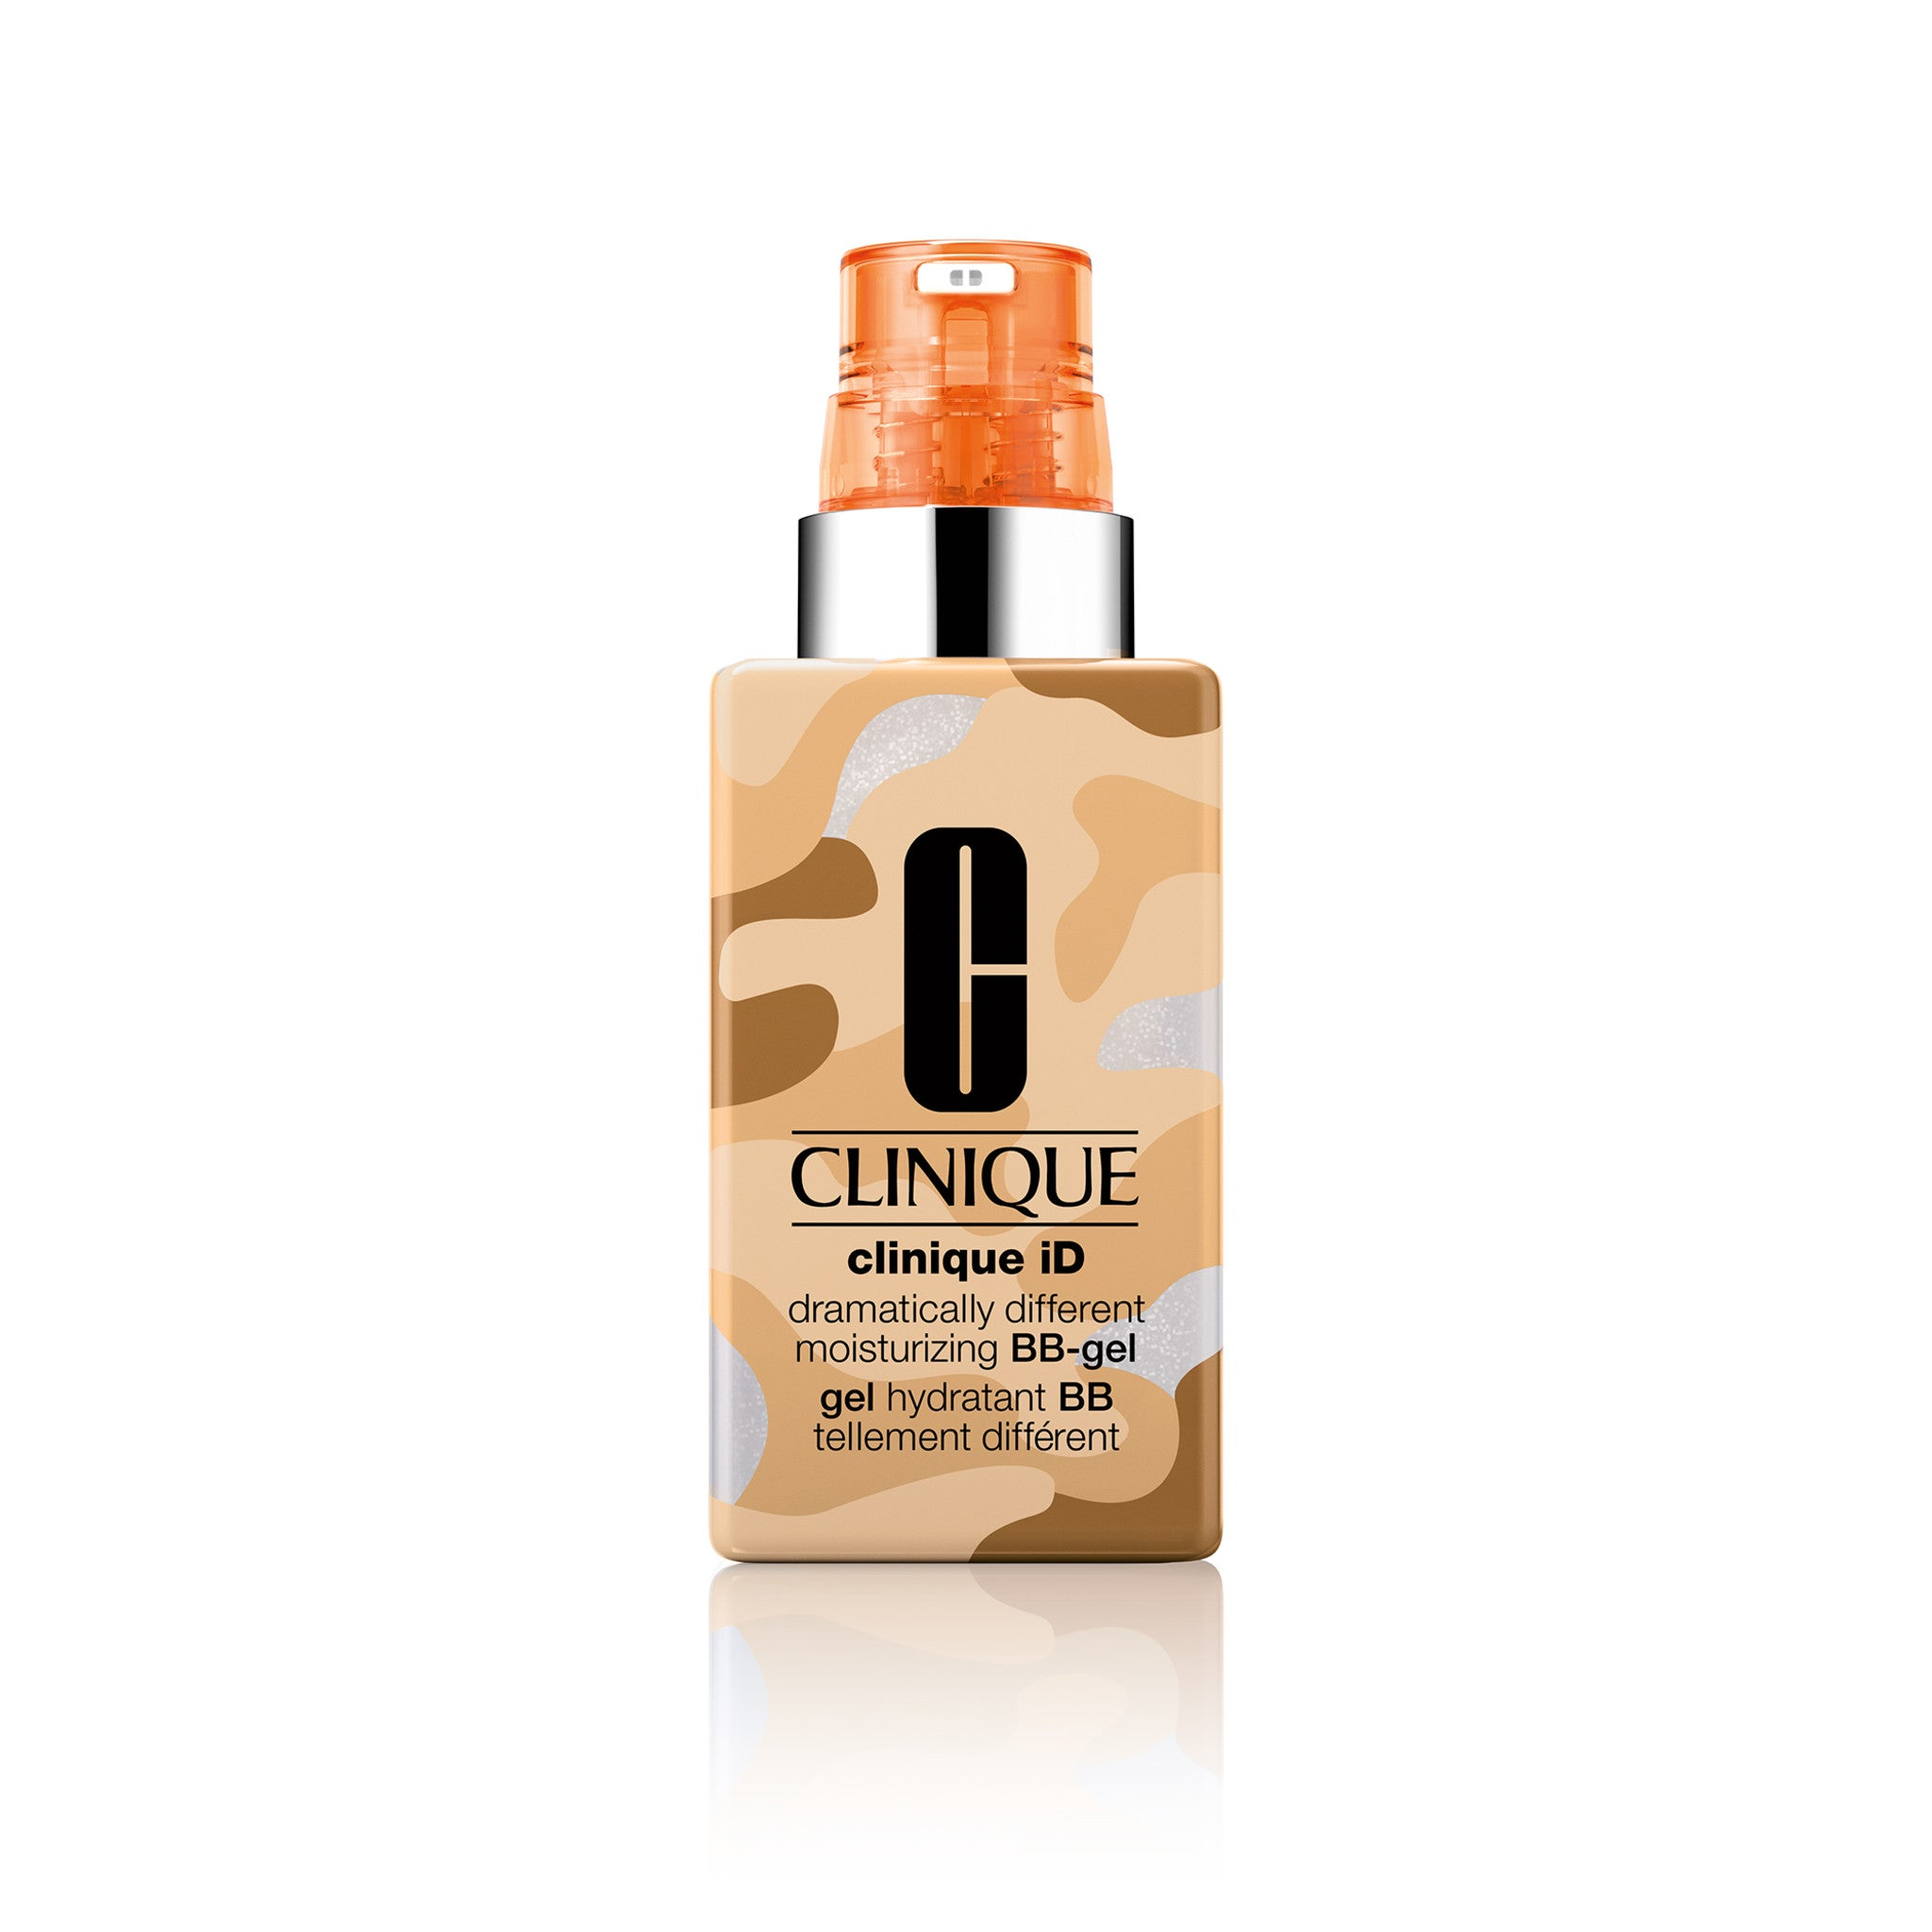 Clinique iD™: Dramatically Different™ Moisturizing BB-gel for Fatigue